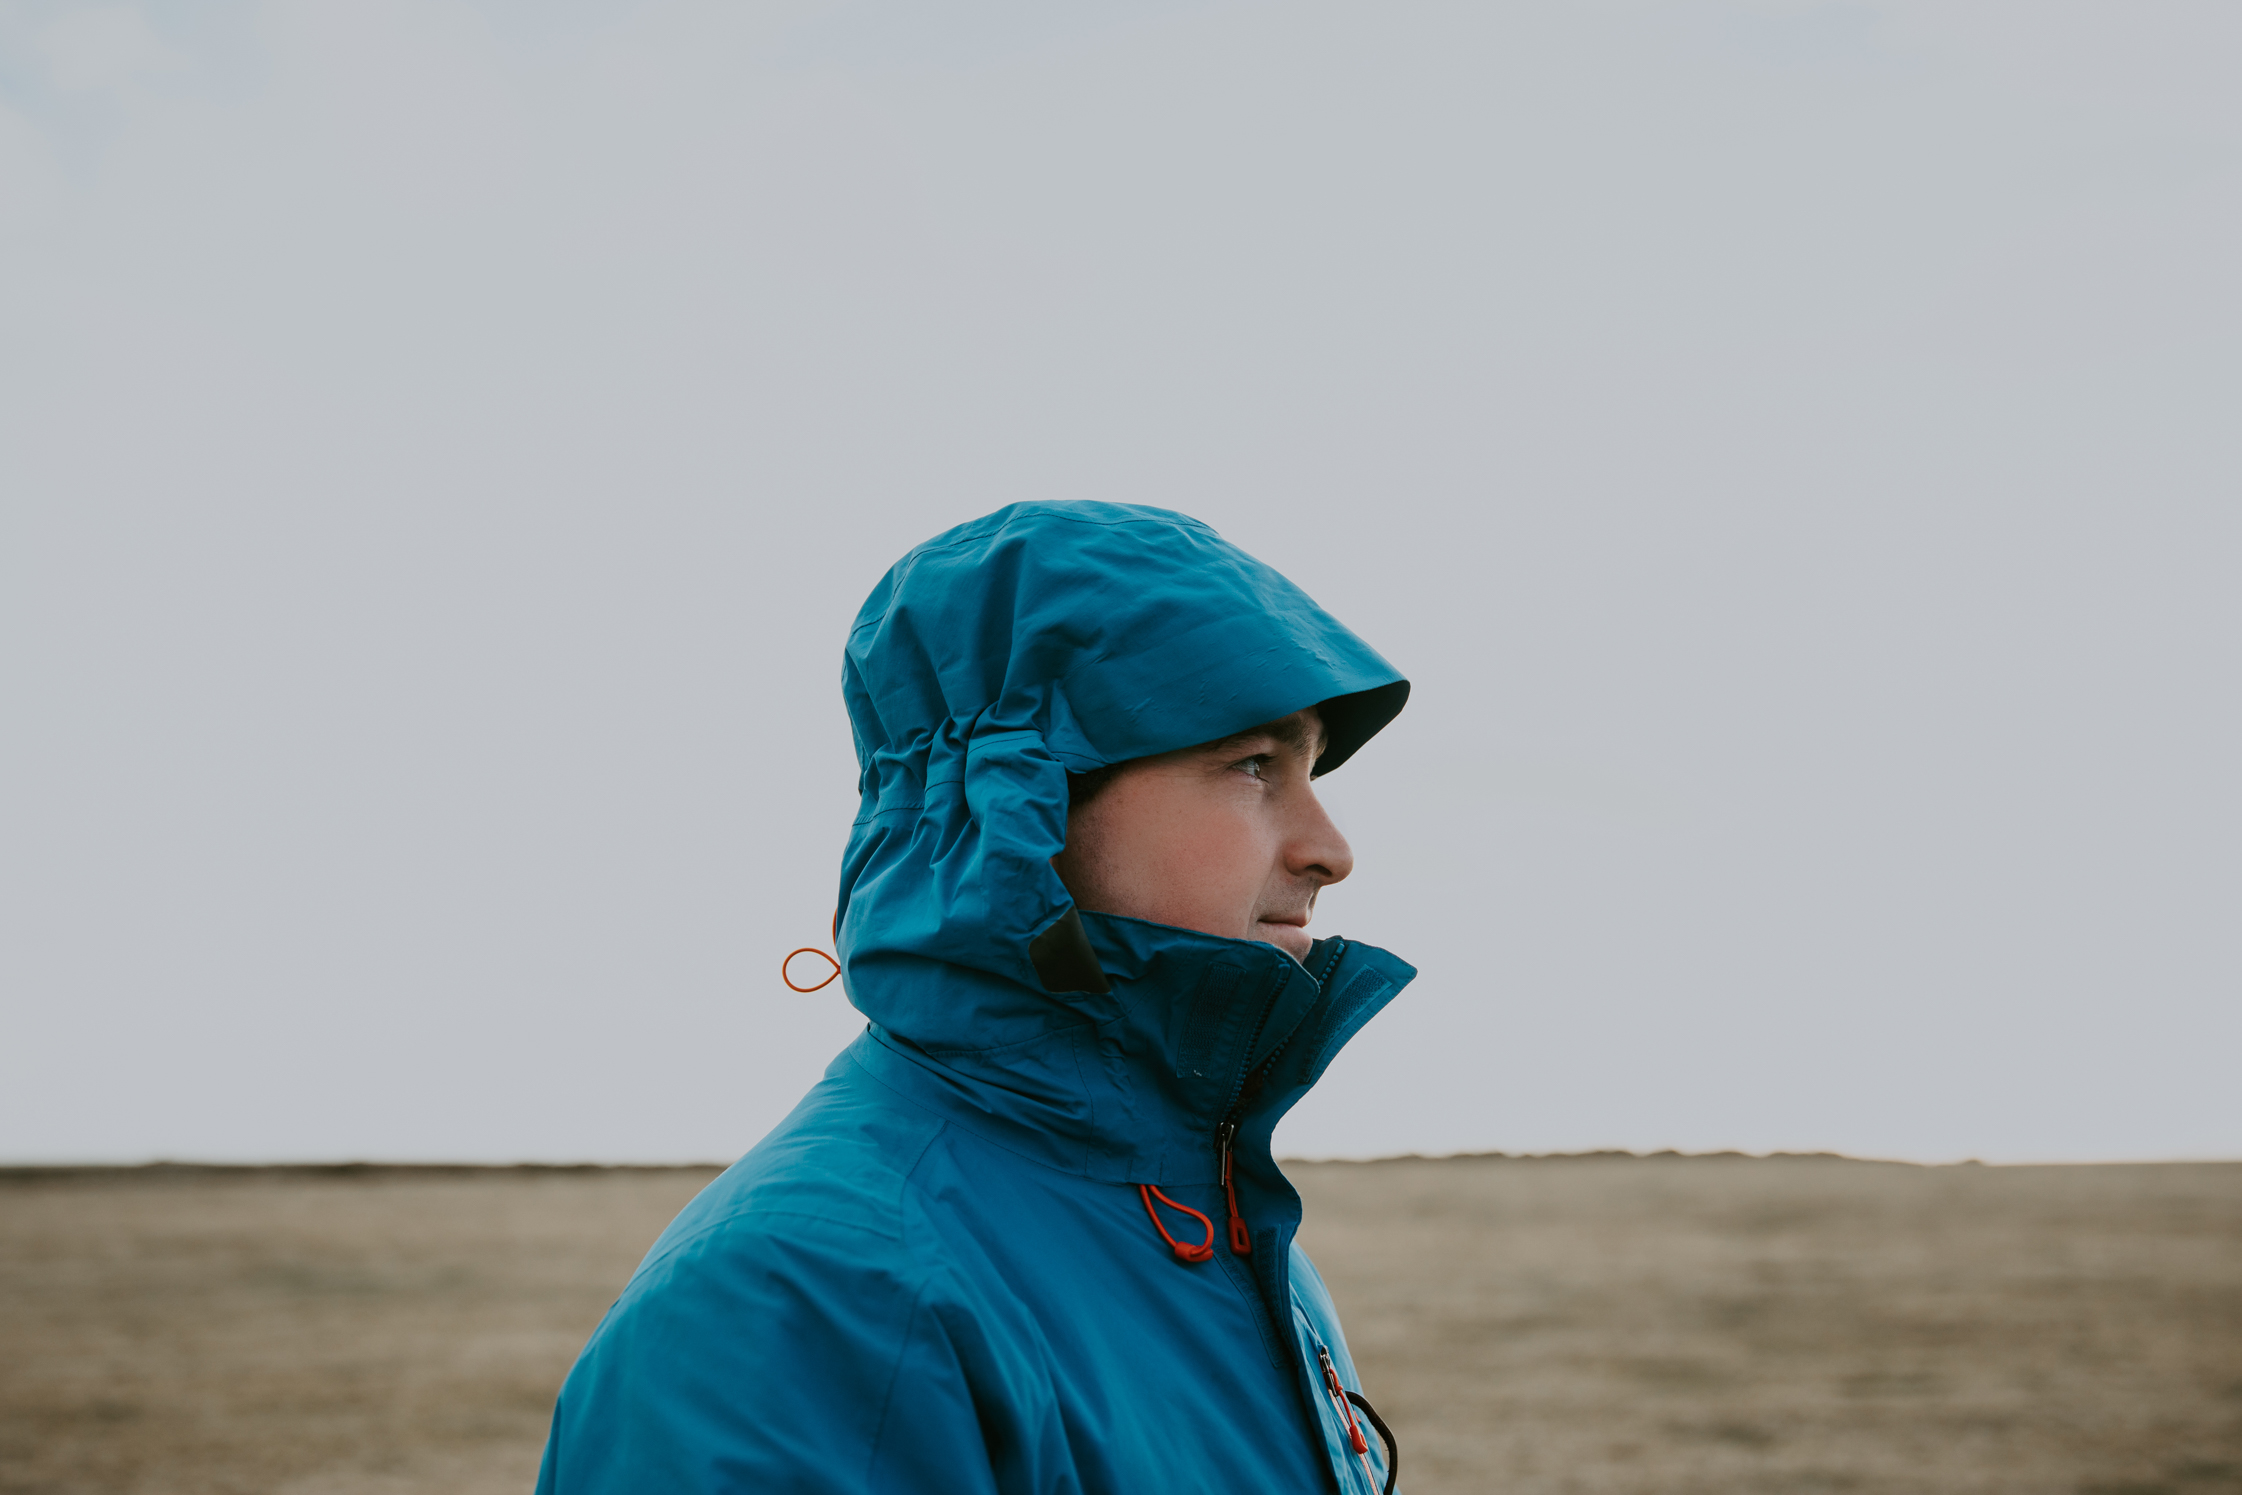 MayIosotaluno-Iceland2018-8706.jpg